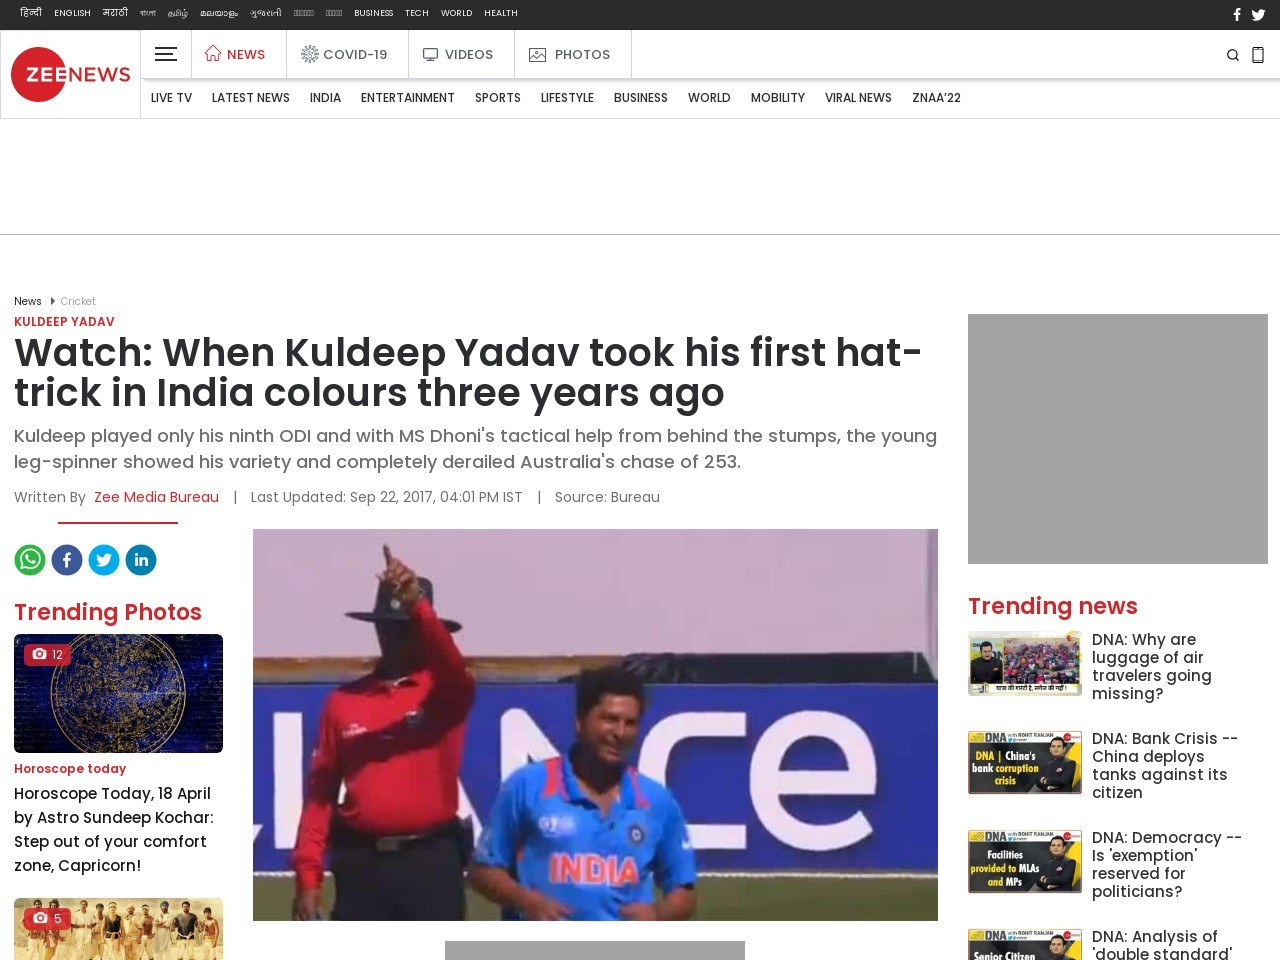 Watch: When Kuldeep Yadav took his first hat-trick in India colours three years ago